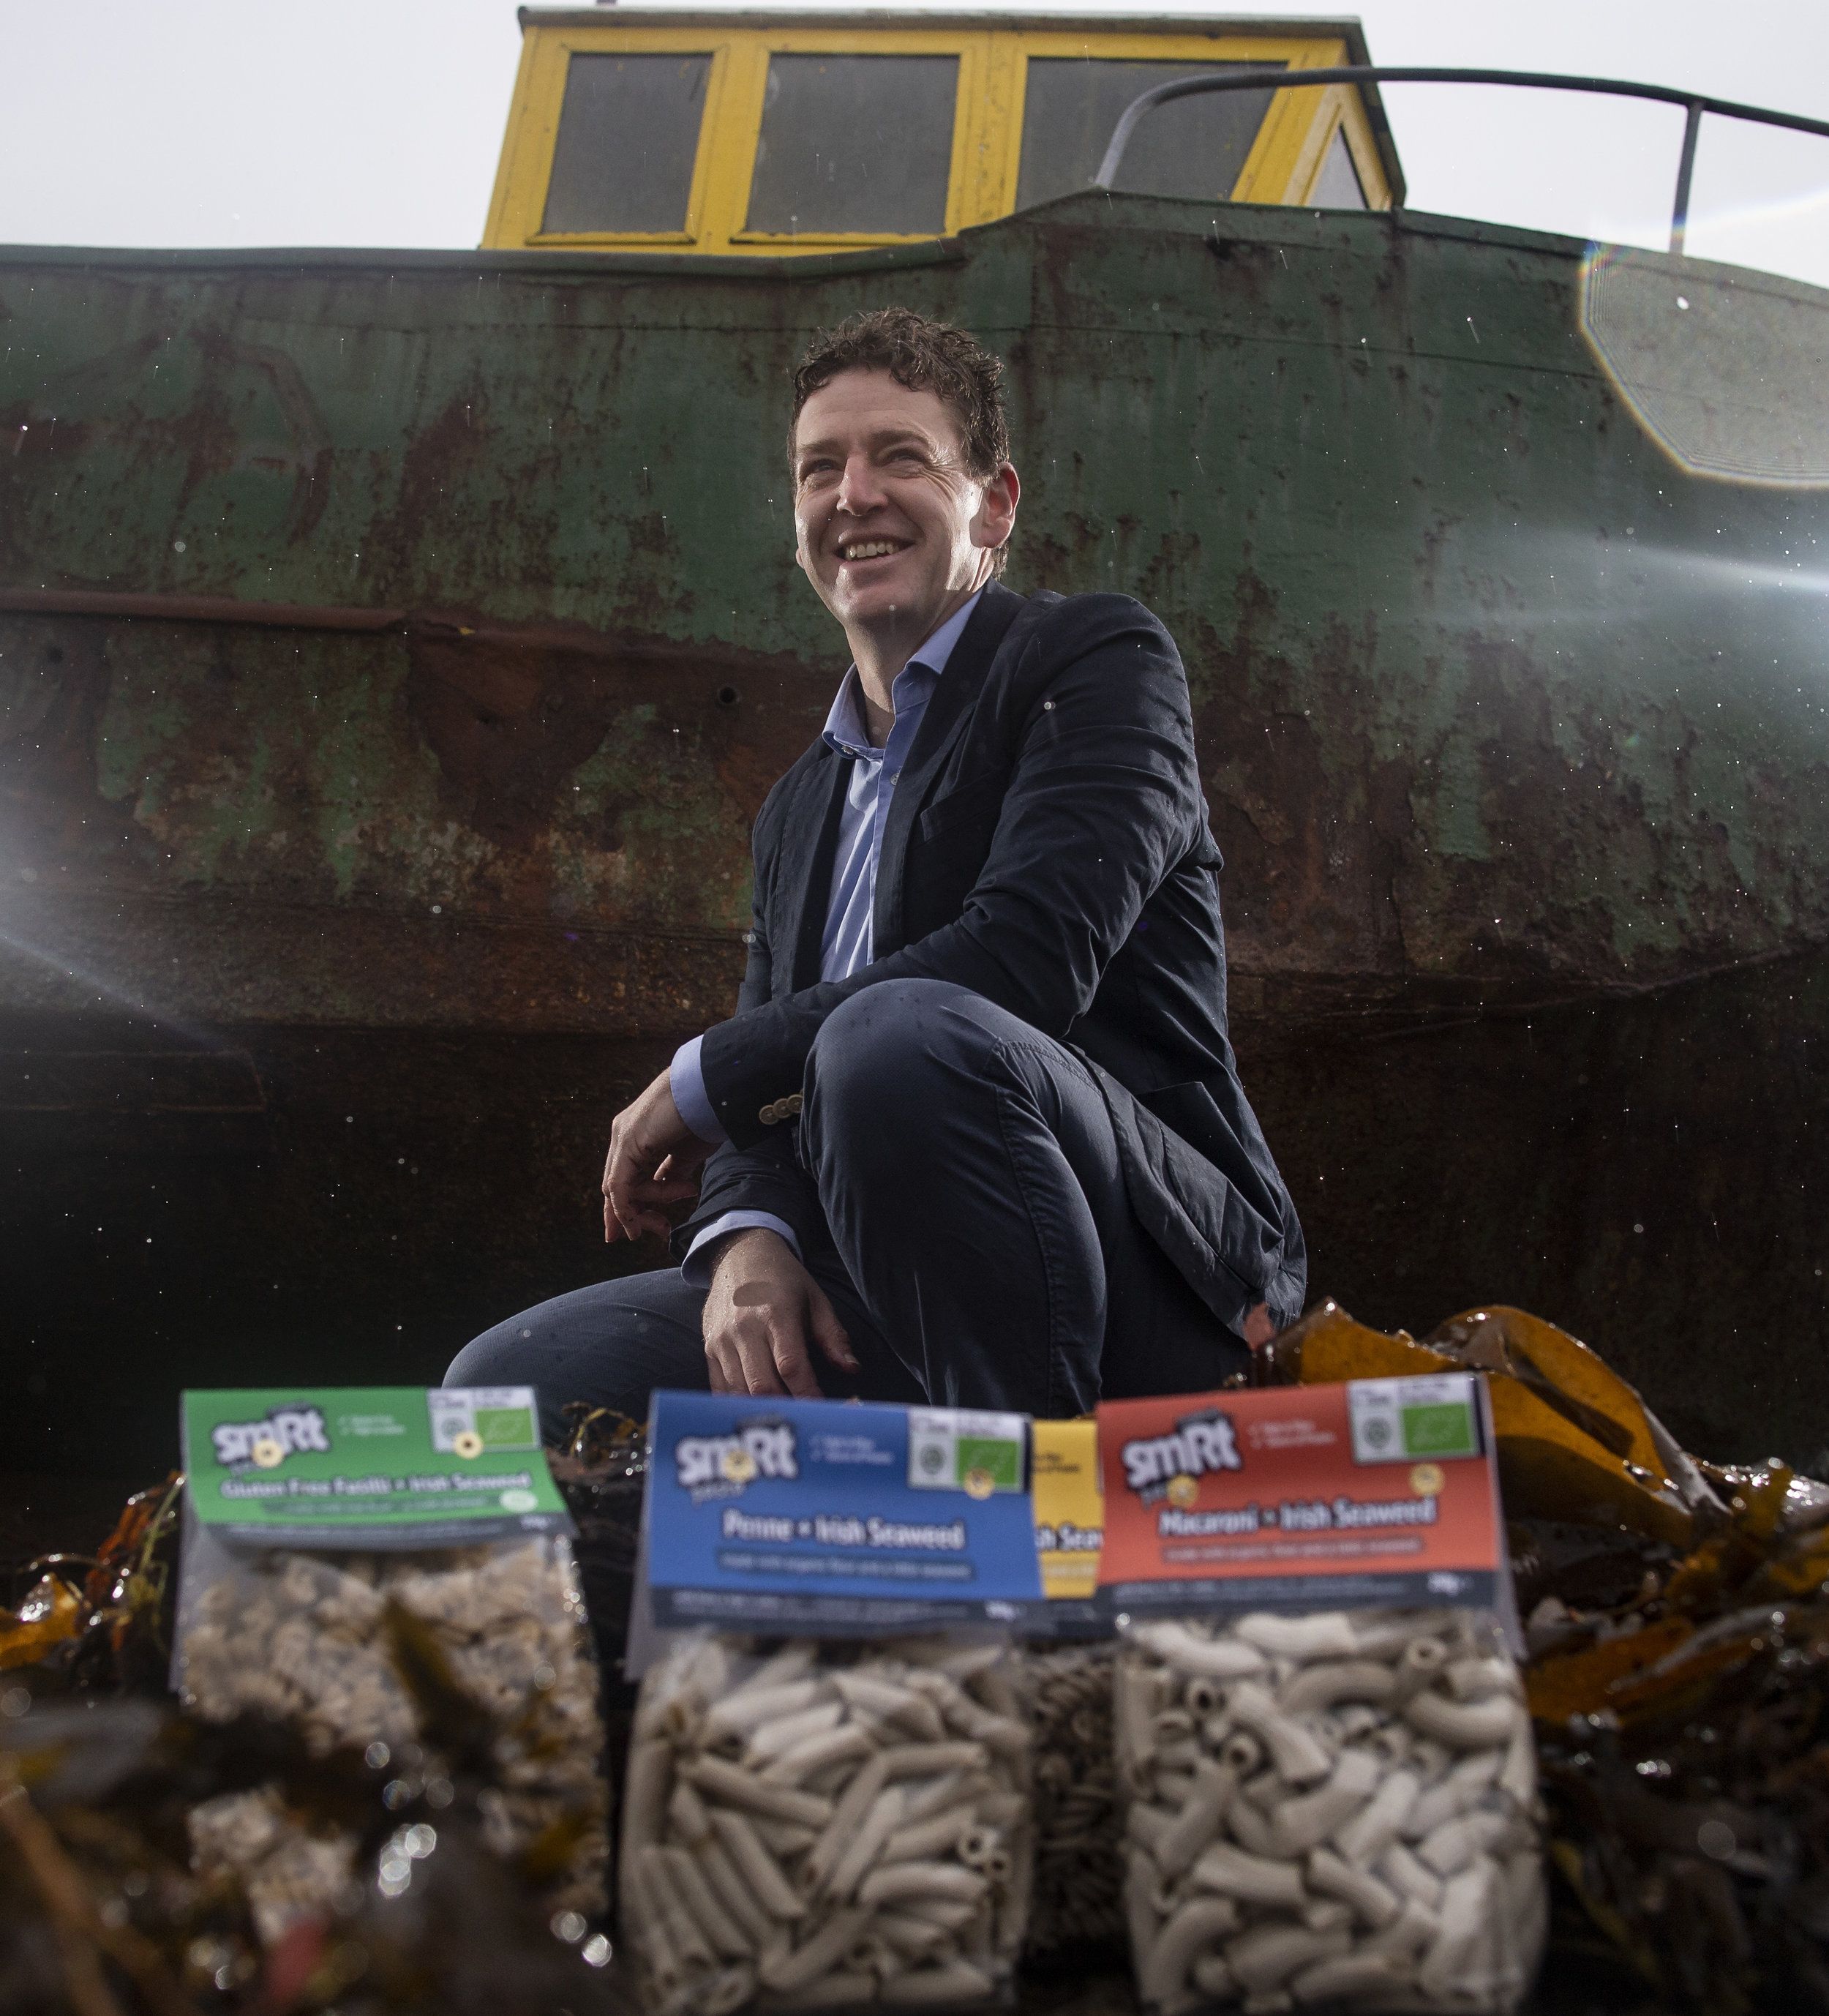 smRt CEO James Cunningham, a boat, some seaweed and smRt pasta…